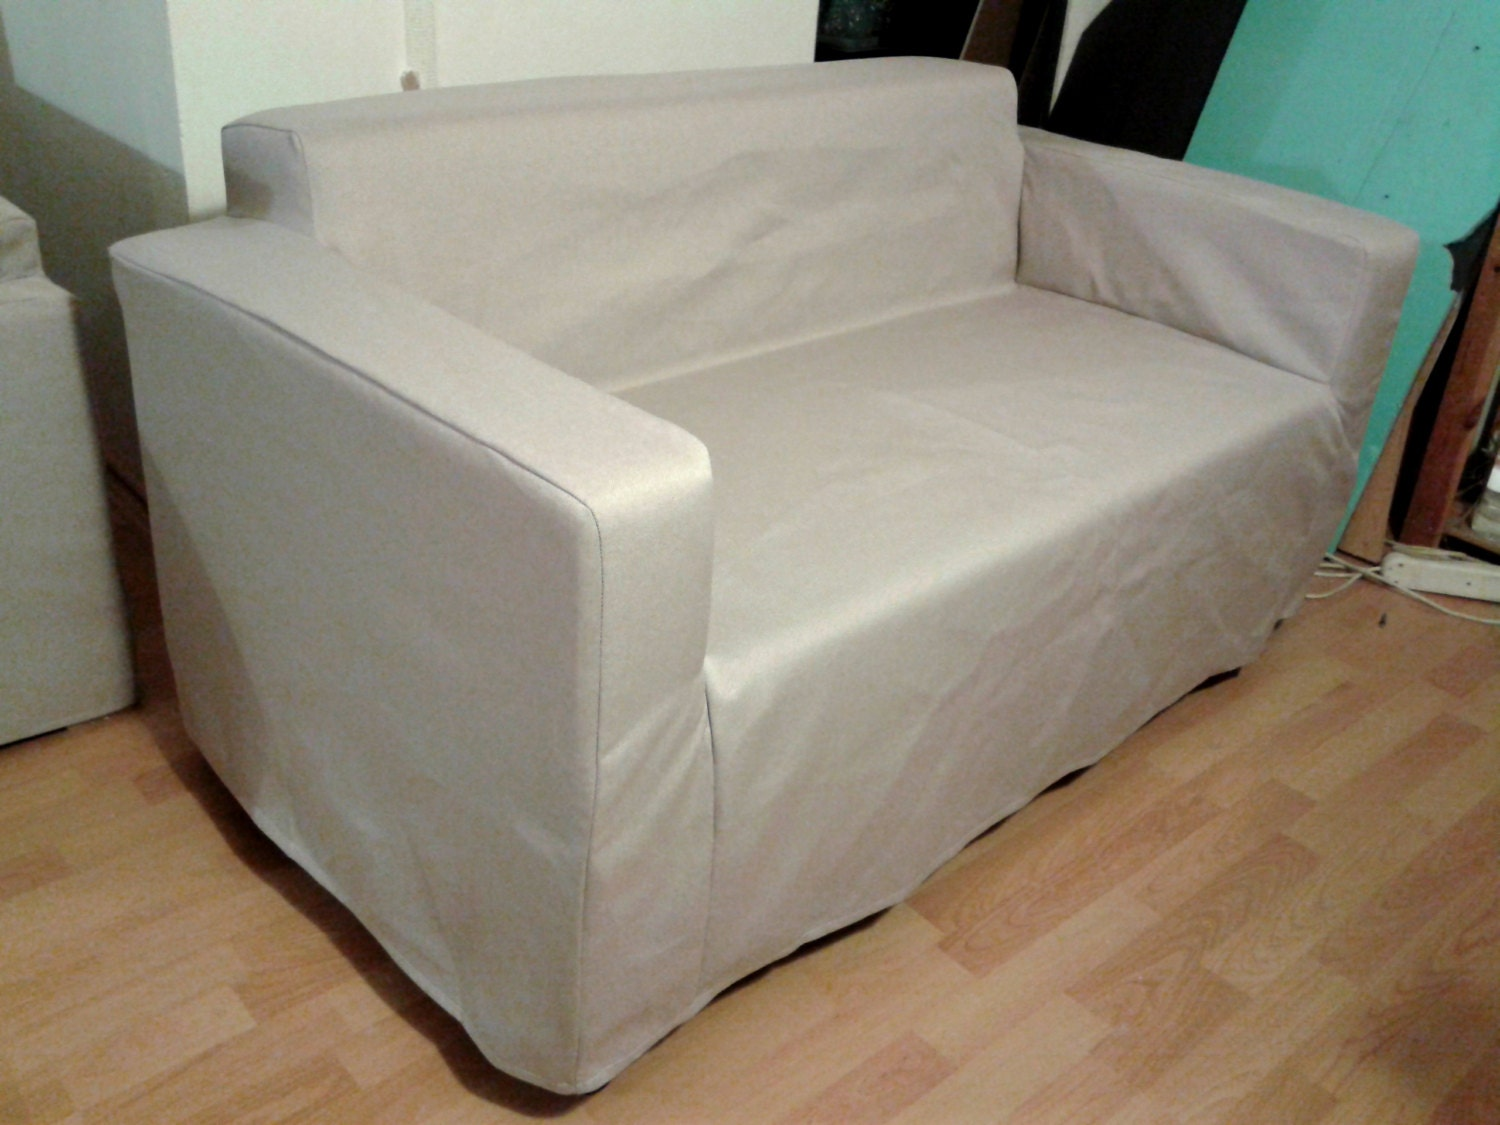 Sale slipcover for klobo sofa from ikea nice strong for Nice sofas for sale